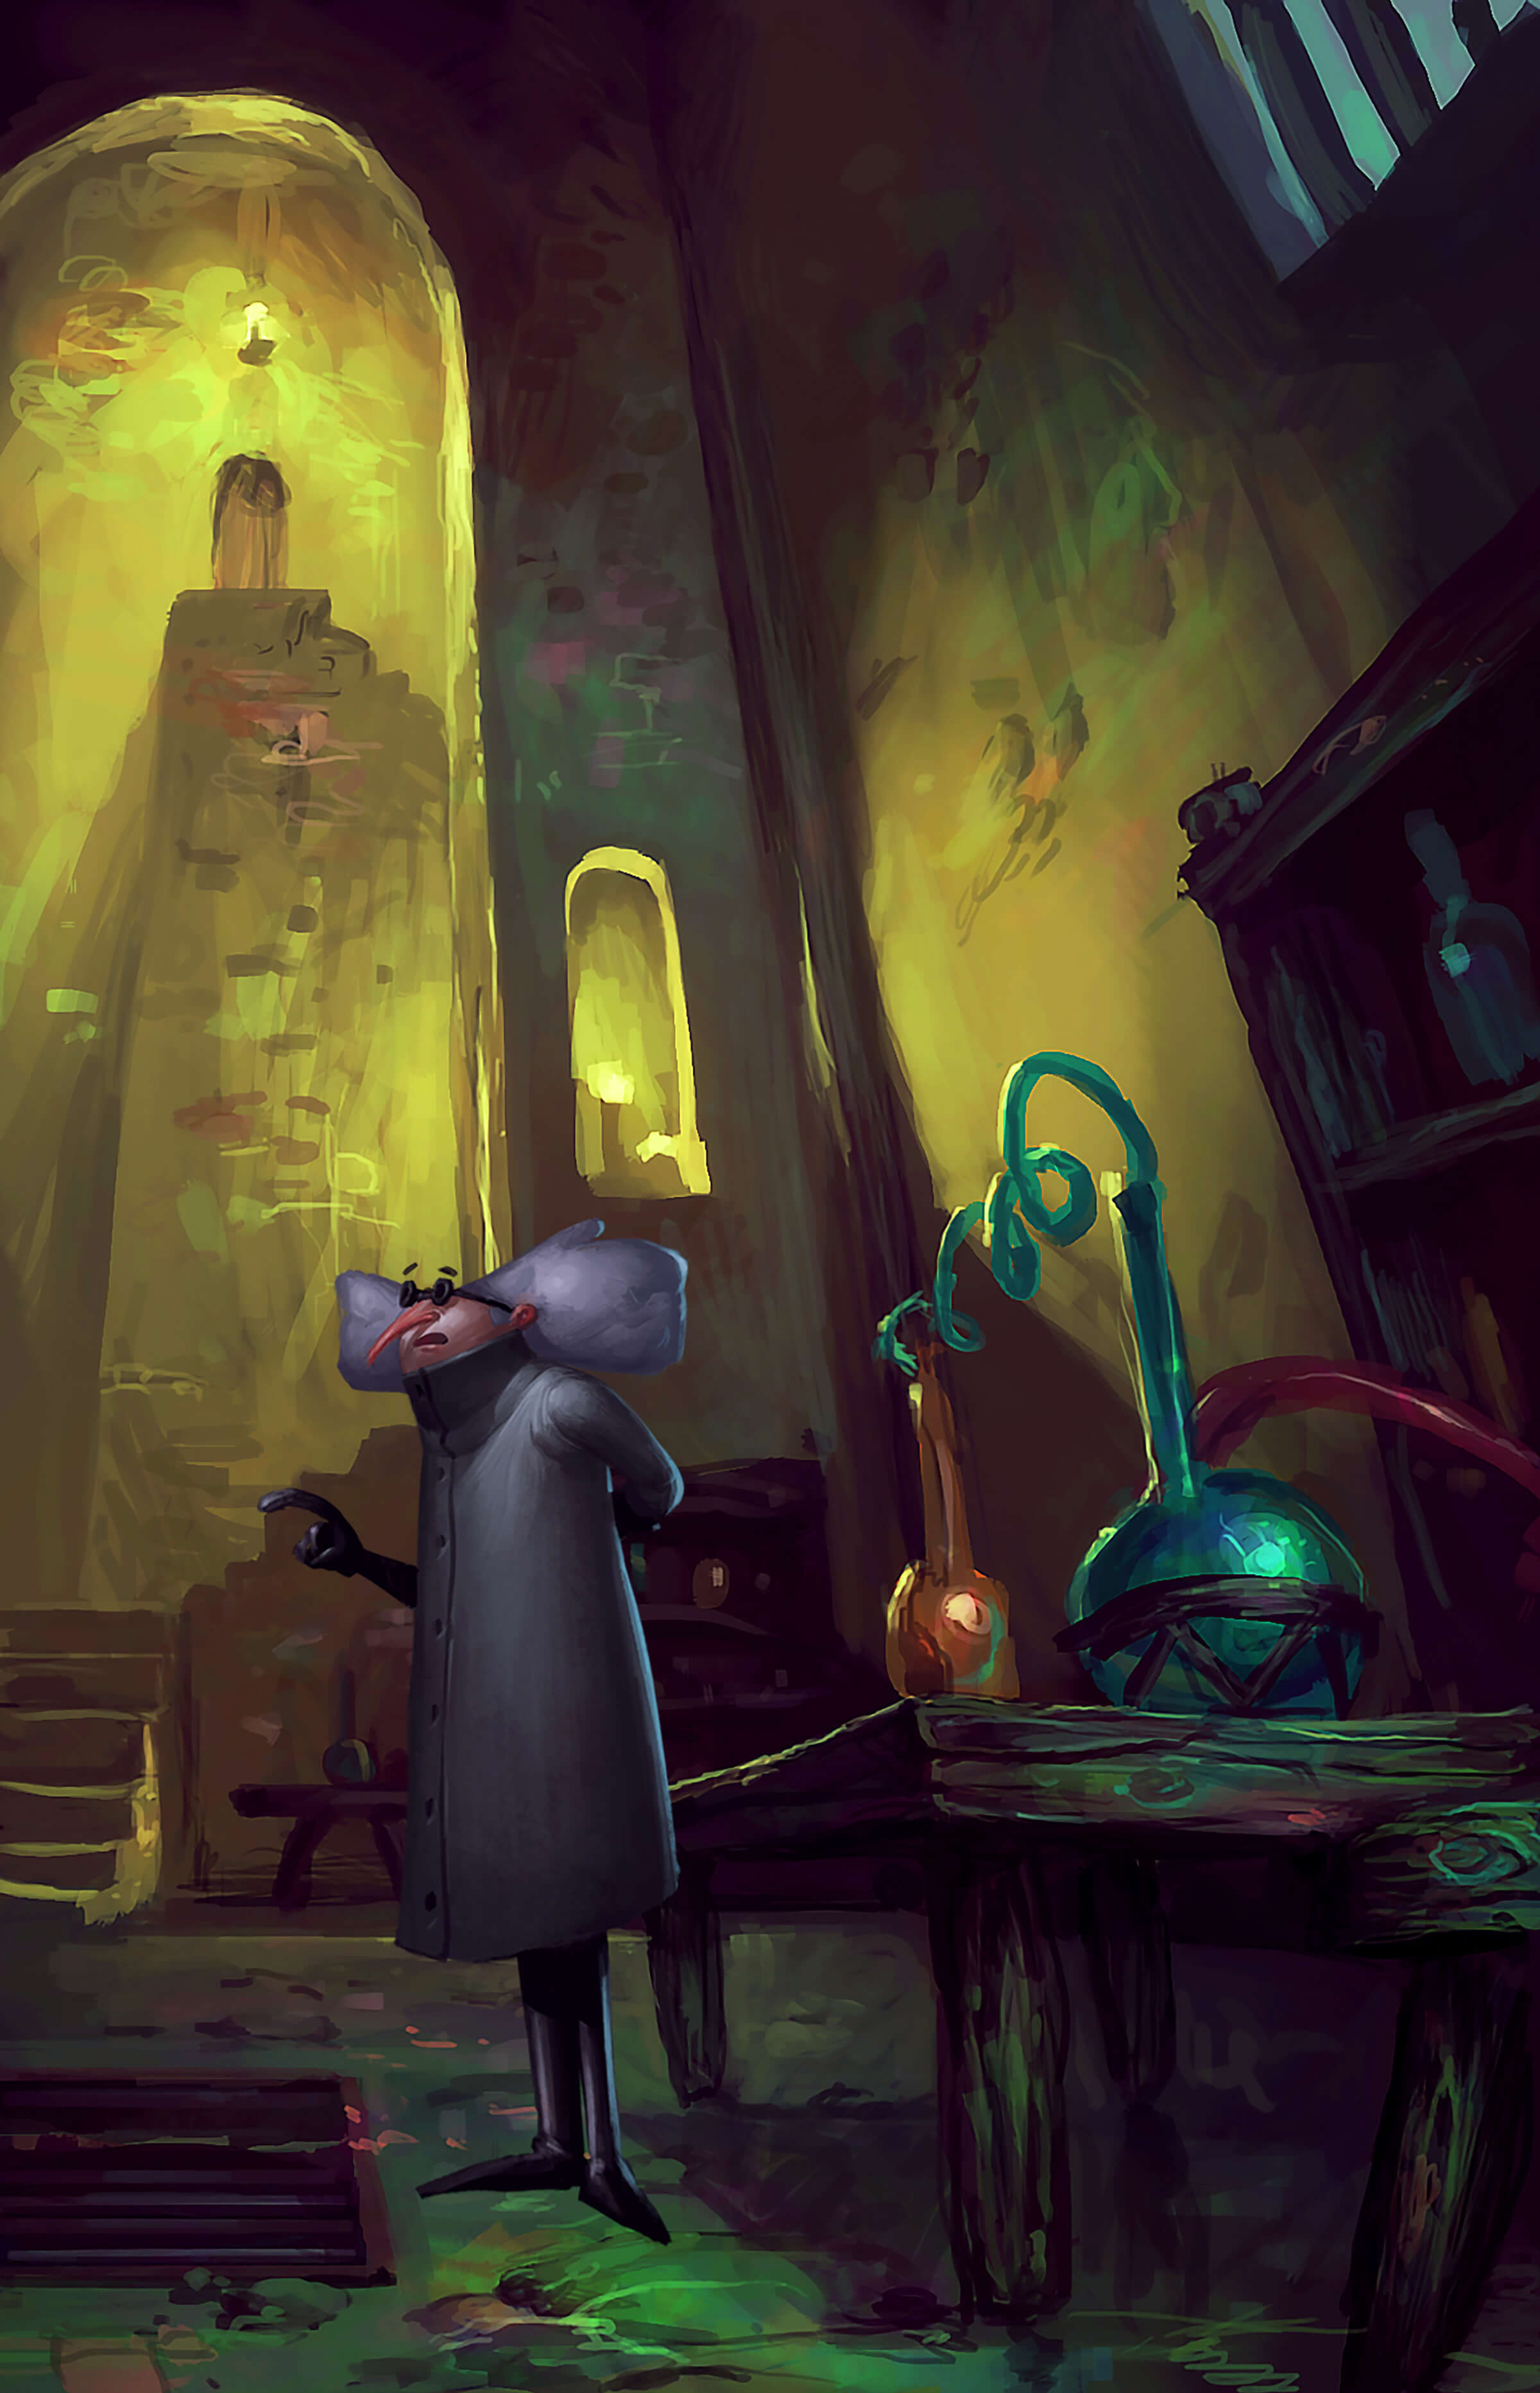 A gray-haired mad scientist character stands next to a chemical experiment in a high-ceilinged room in a stone castle.